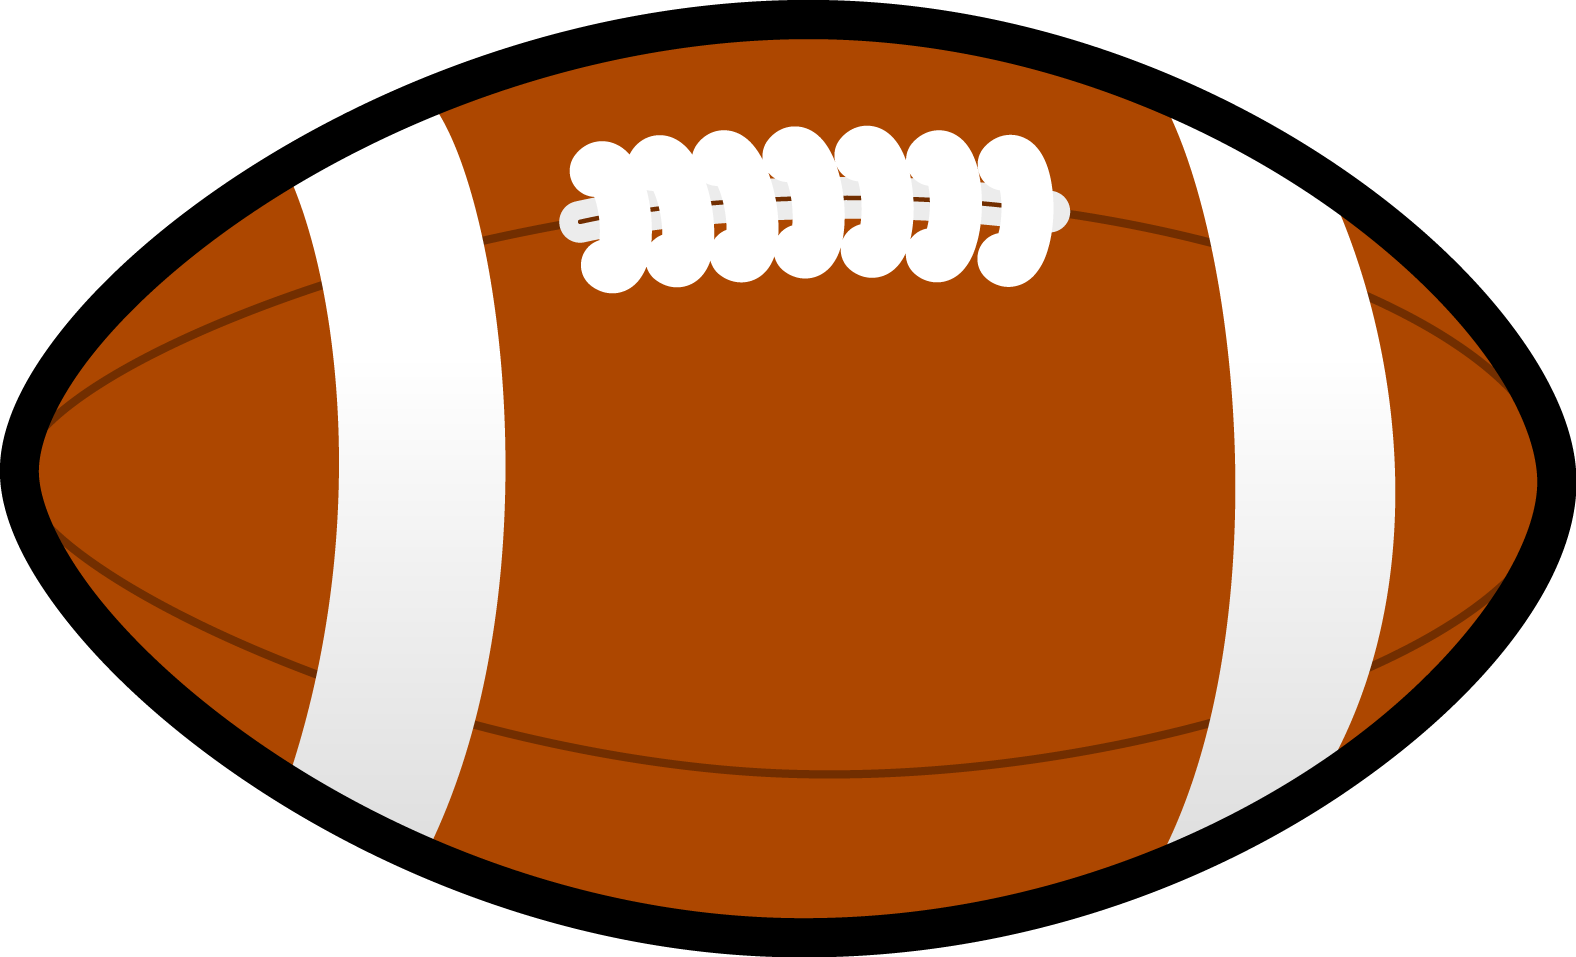 Football ball clipart #Football #Footballball.